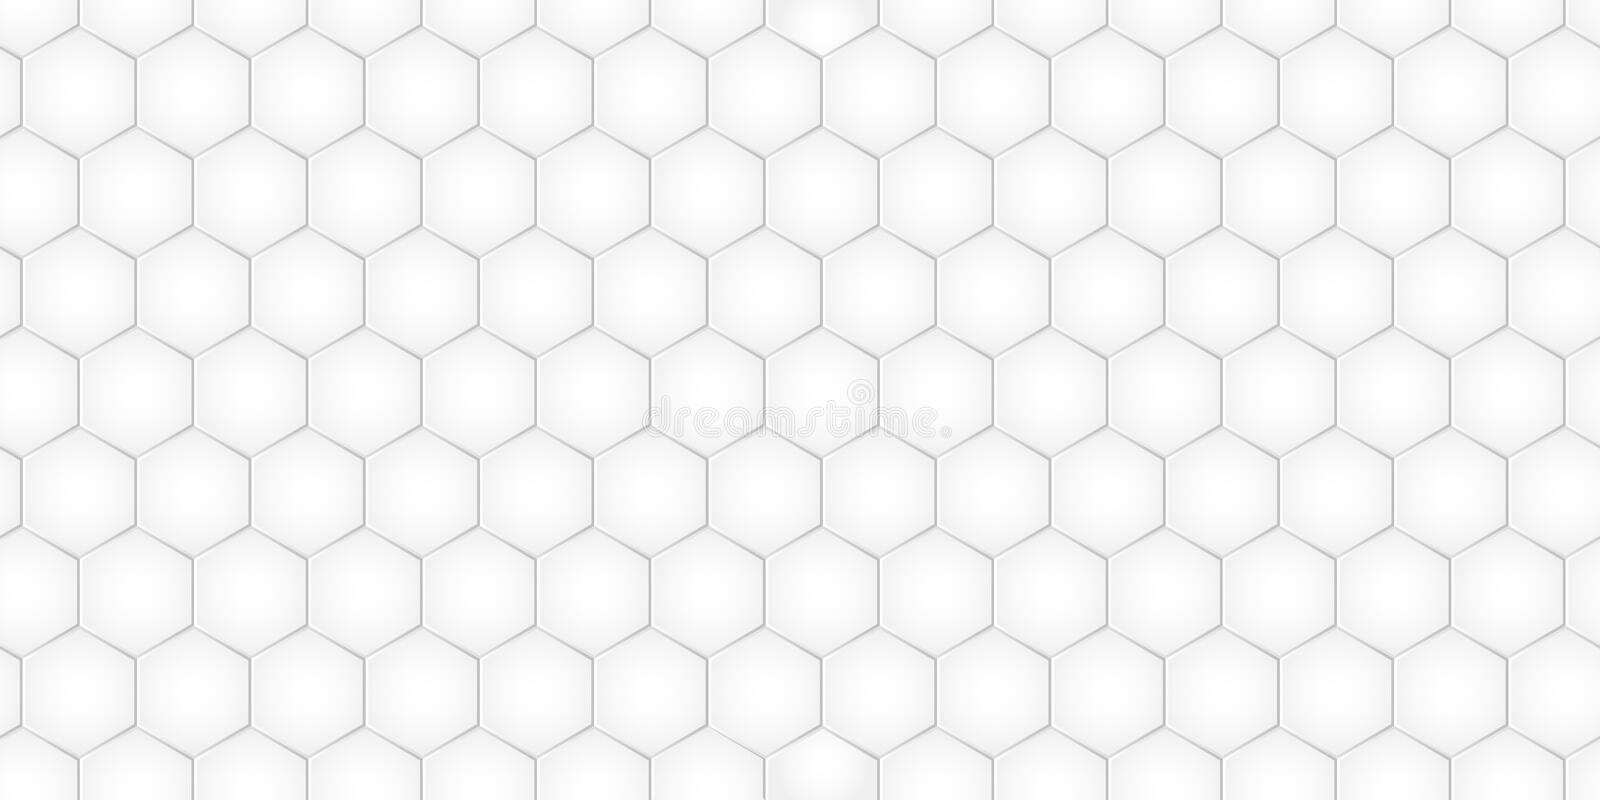 Geometric pattern with hexagons, monochrome tile. Honeycomb background. Vector. Illustration vector illustration